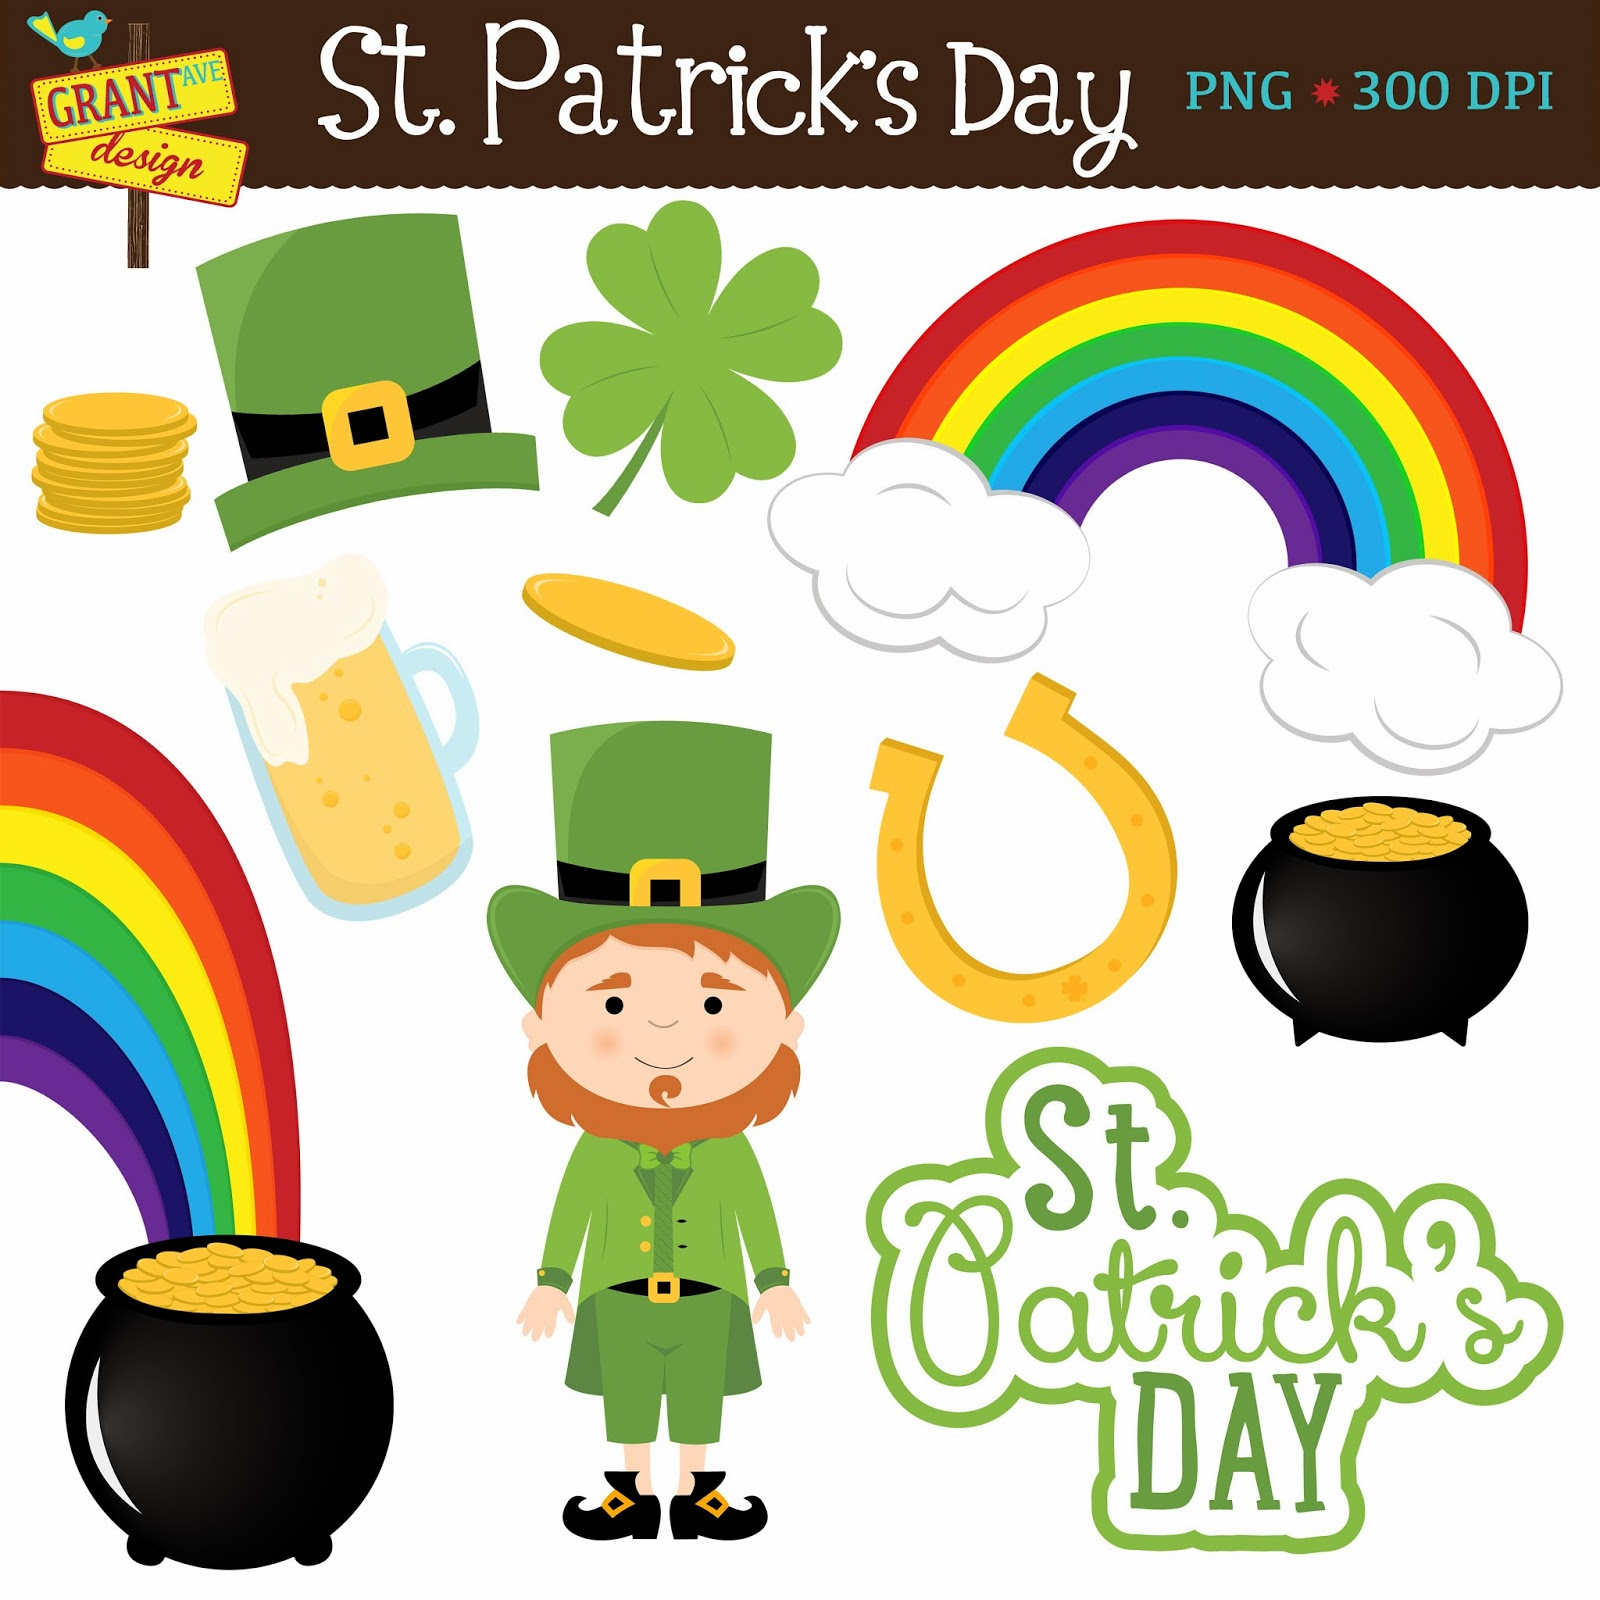 Cute St. Patrick's Day Clip Art